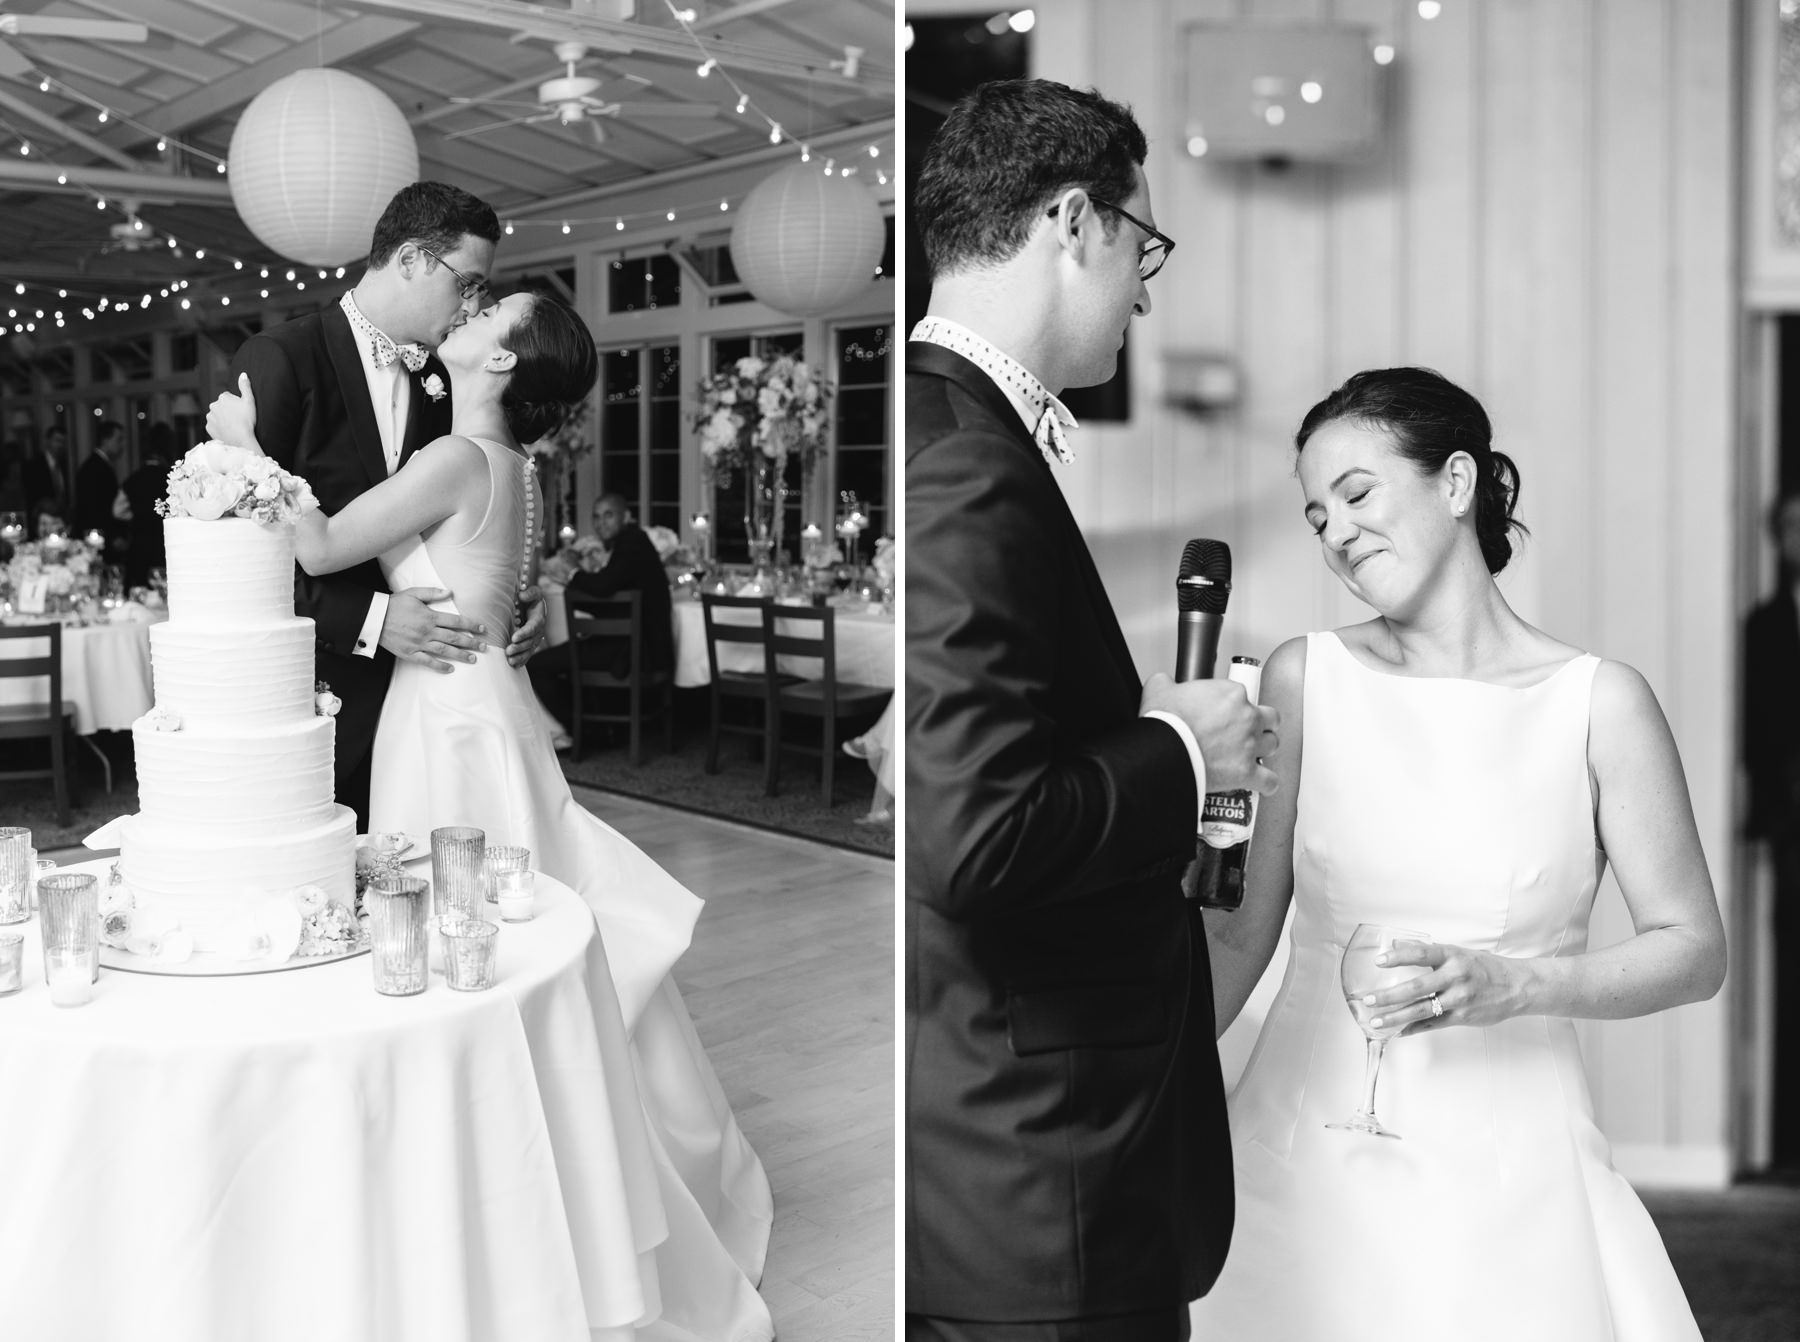 black and white photos of bride and groom cutting cake